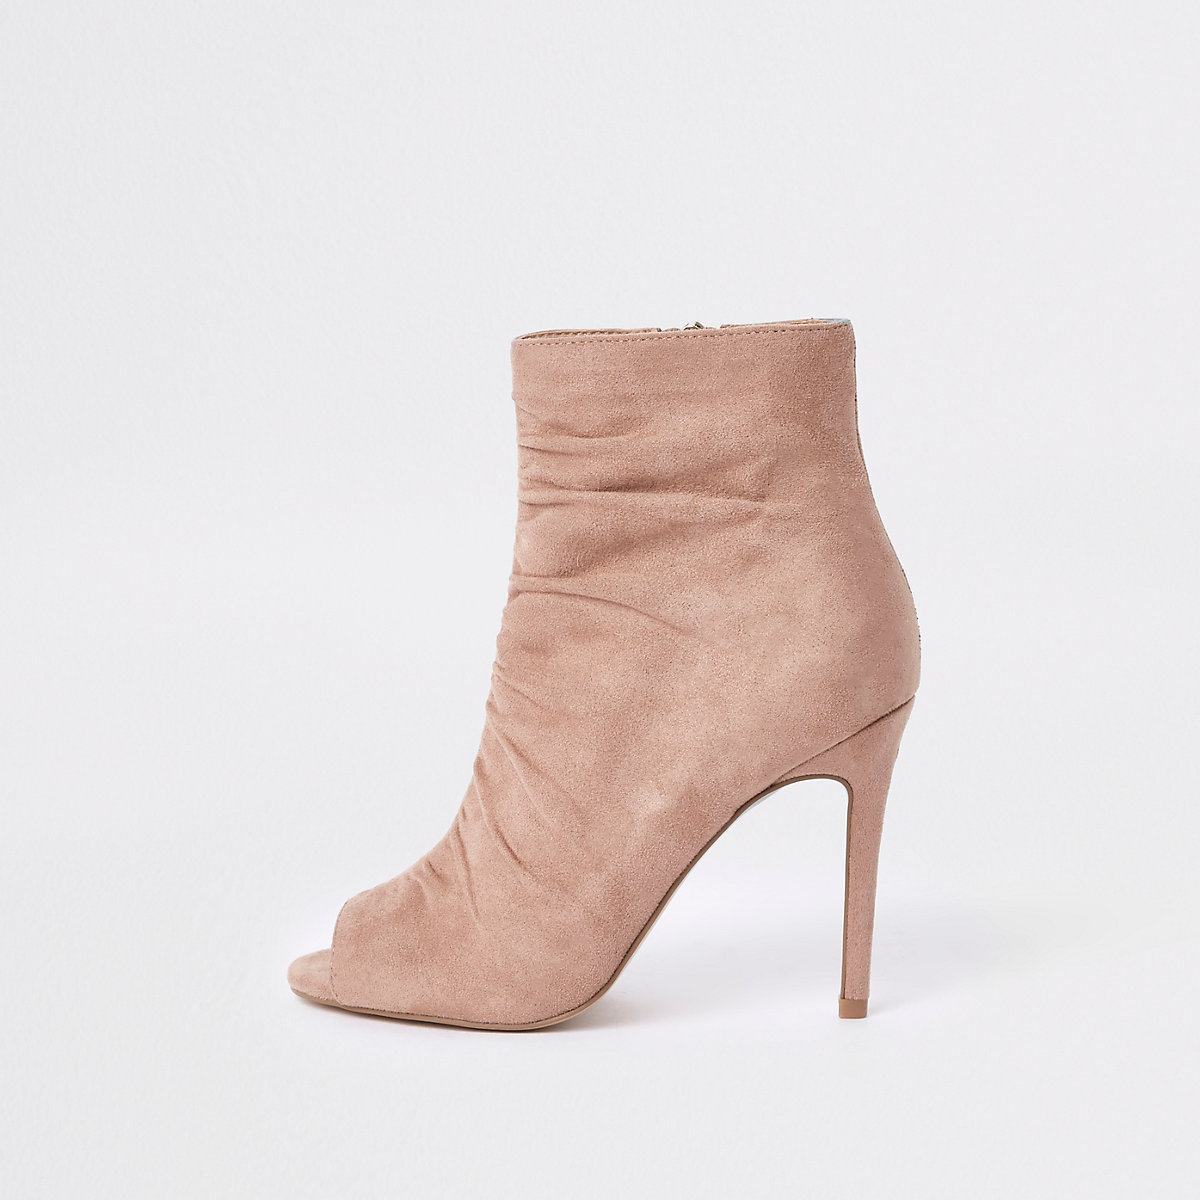 Light pink faux suede open toe shoe boot